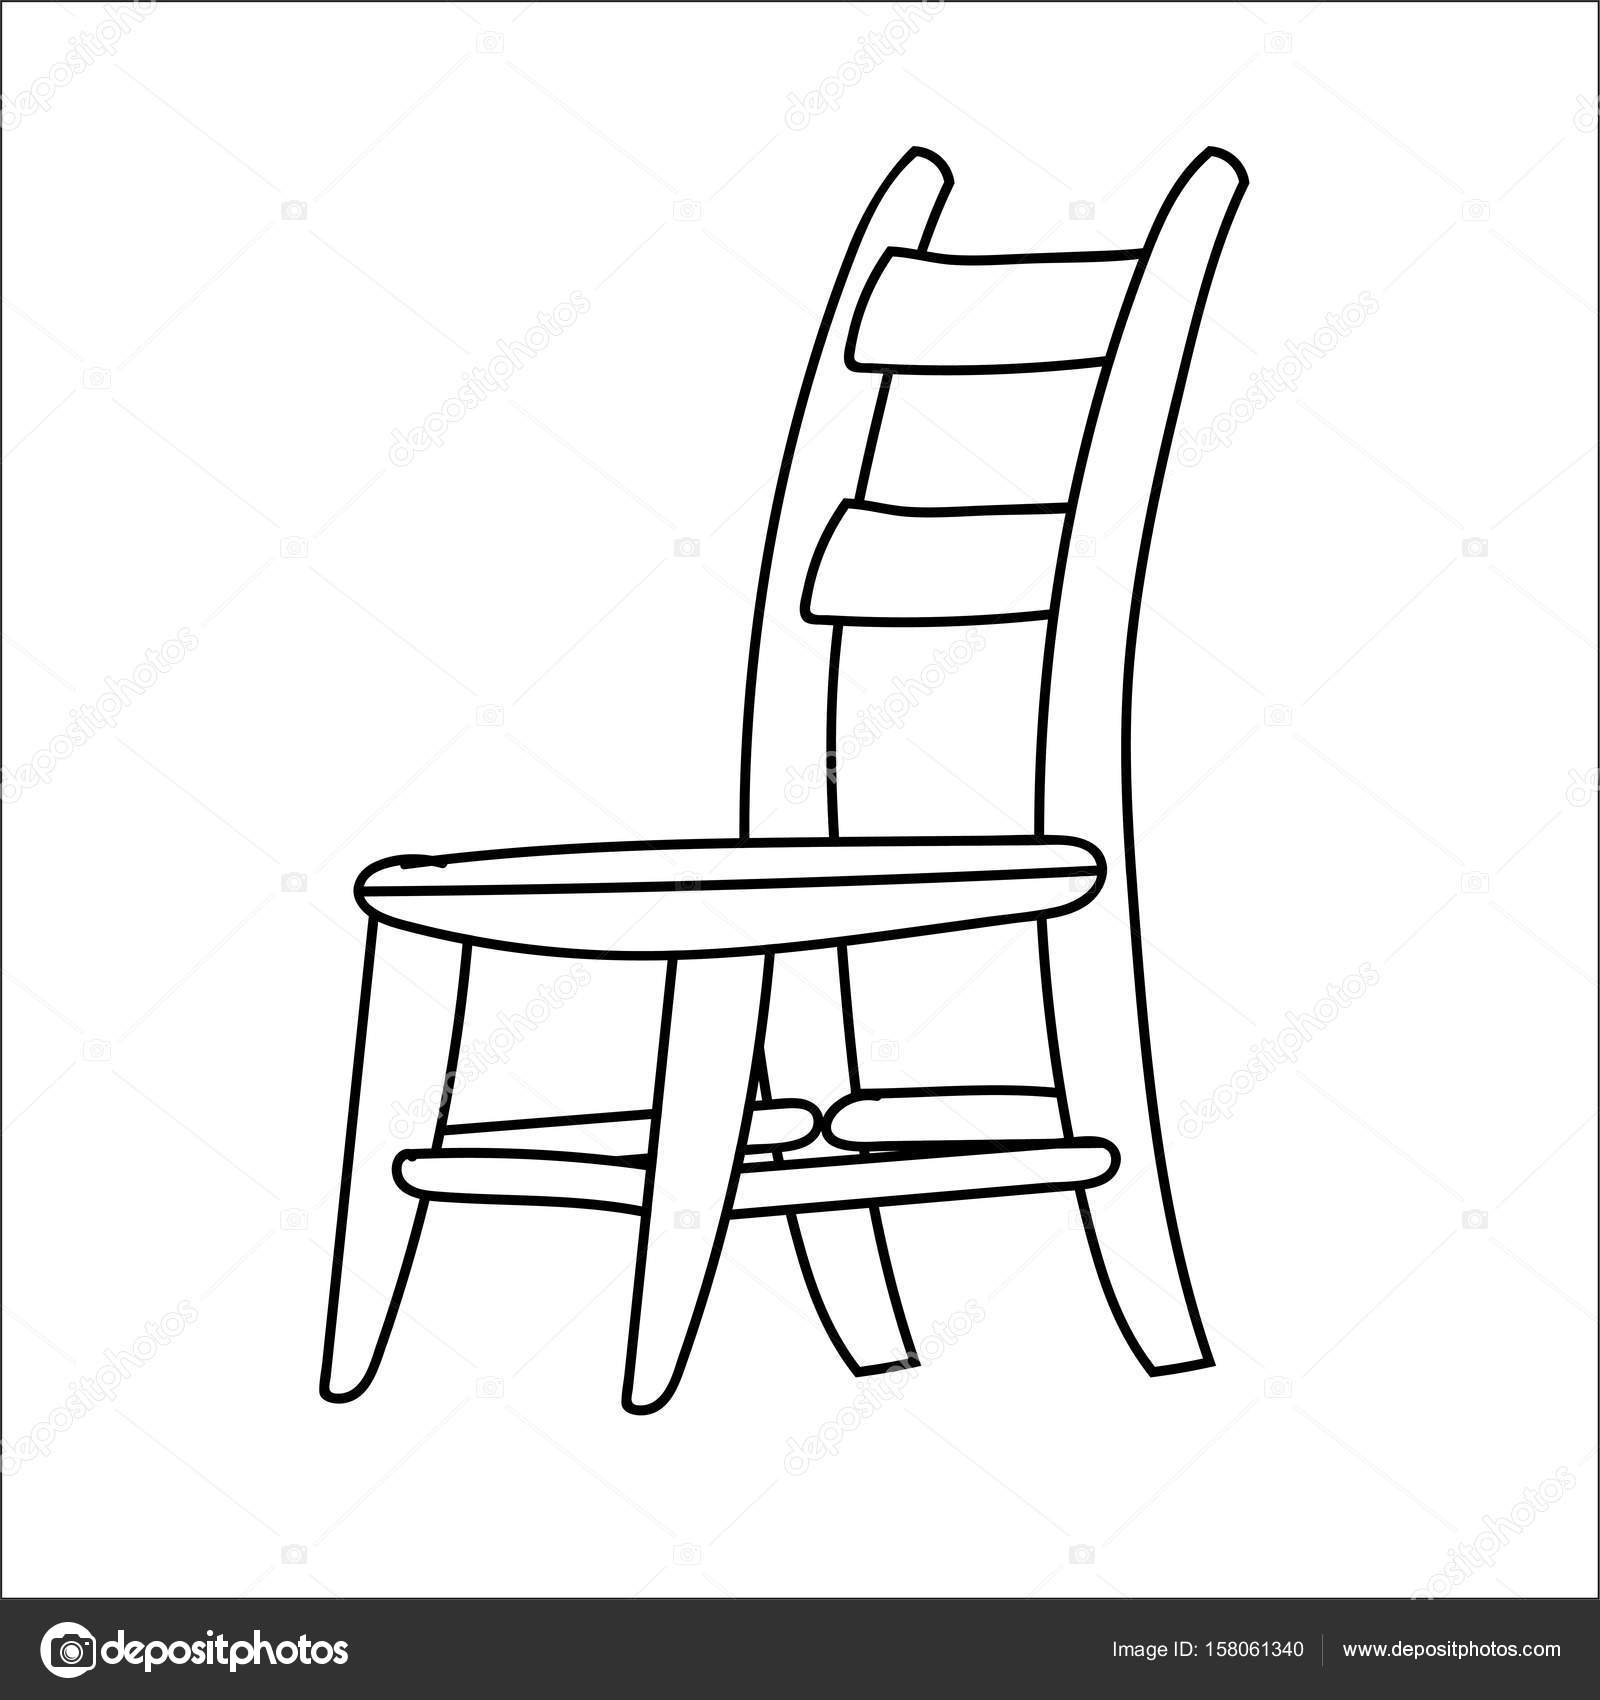 Chair Line Drawing At Getdrawings